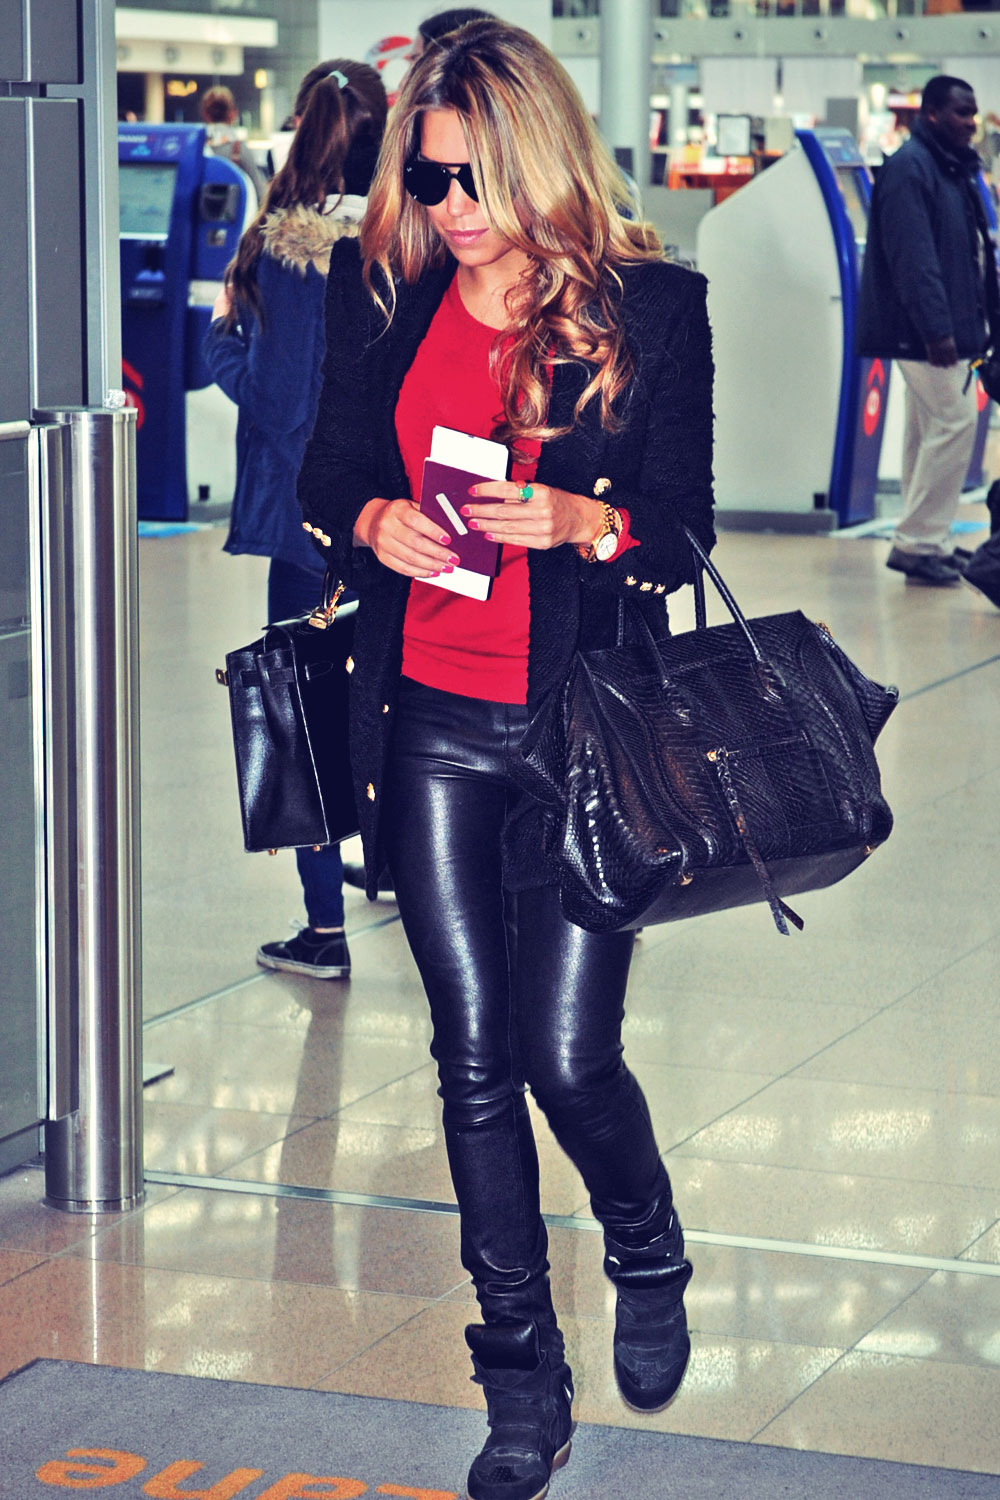 Sylvie Meis at Hamburg airport